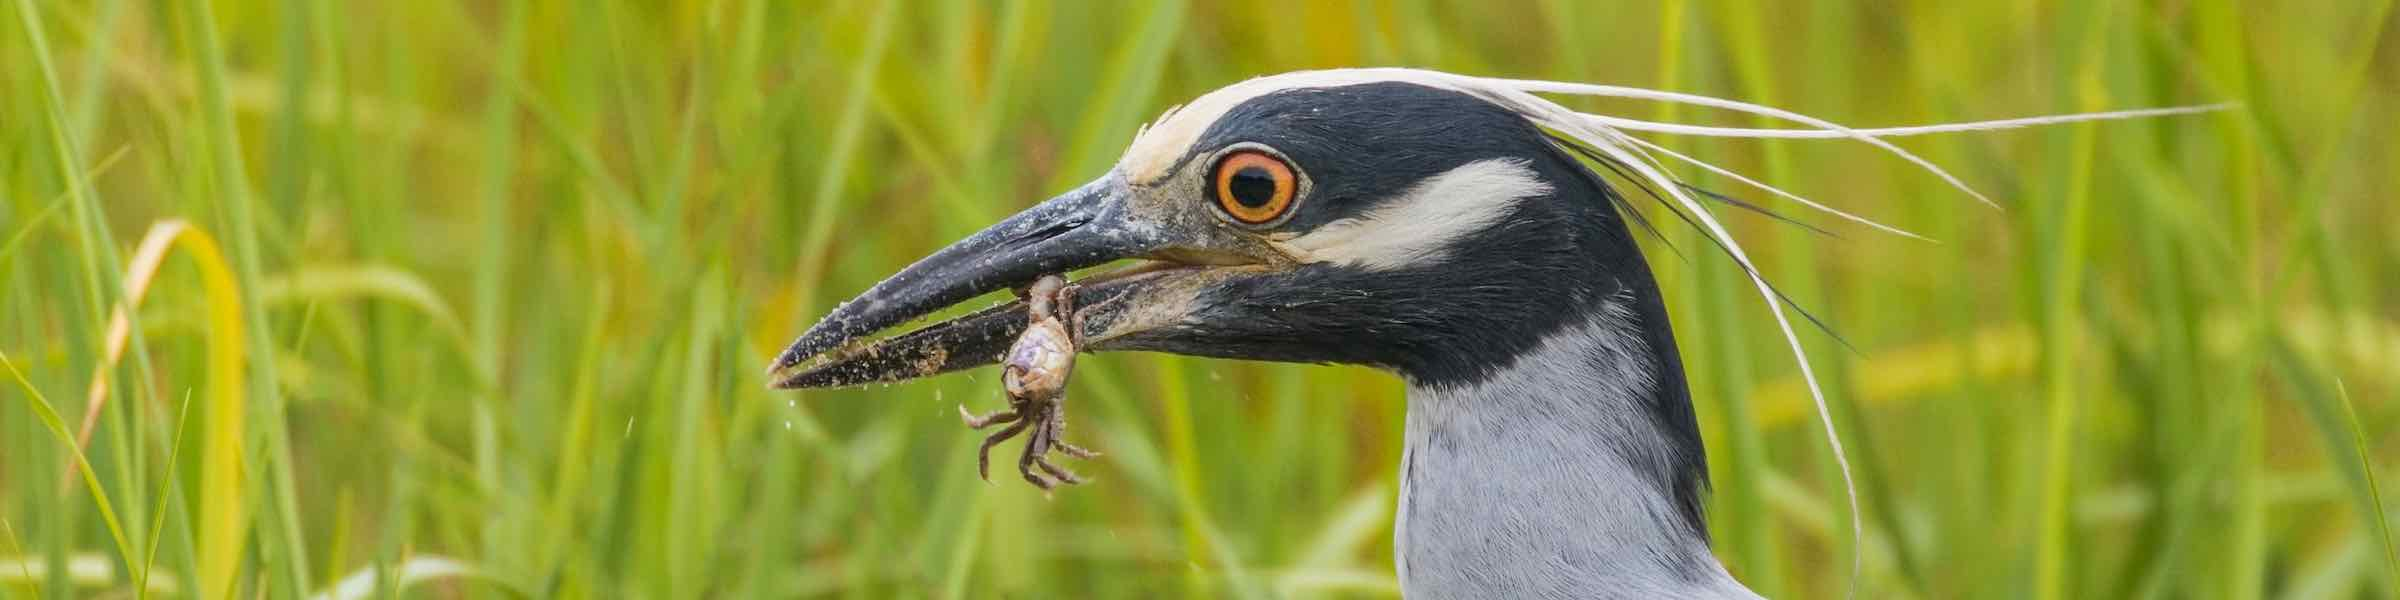 Yellow-crowned night heron with a little crab in its beak.